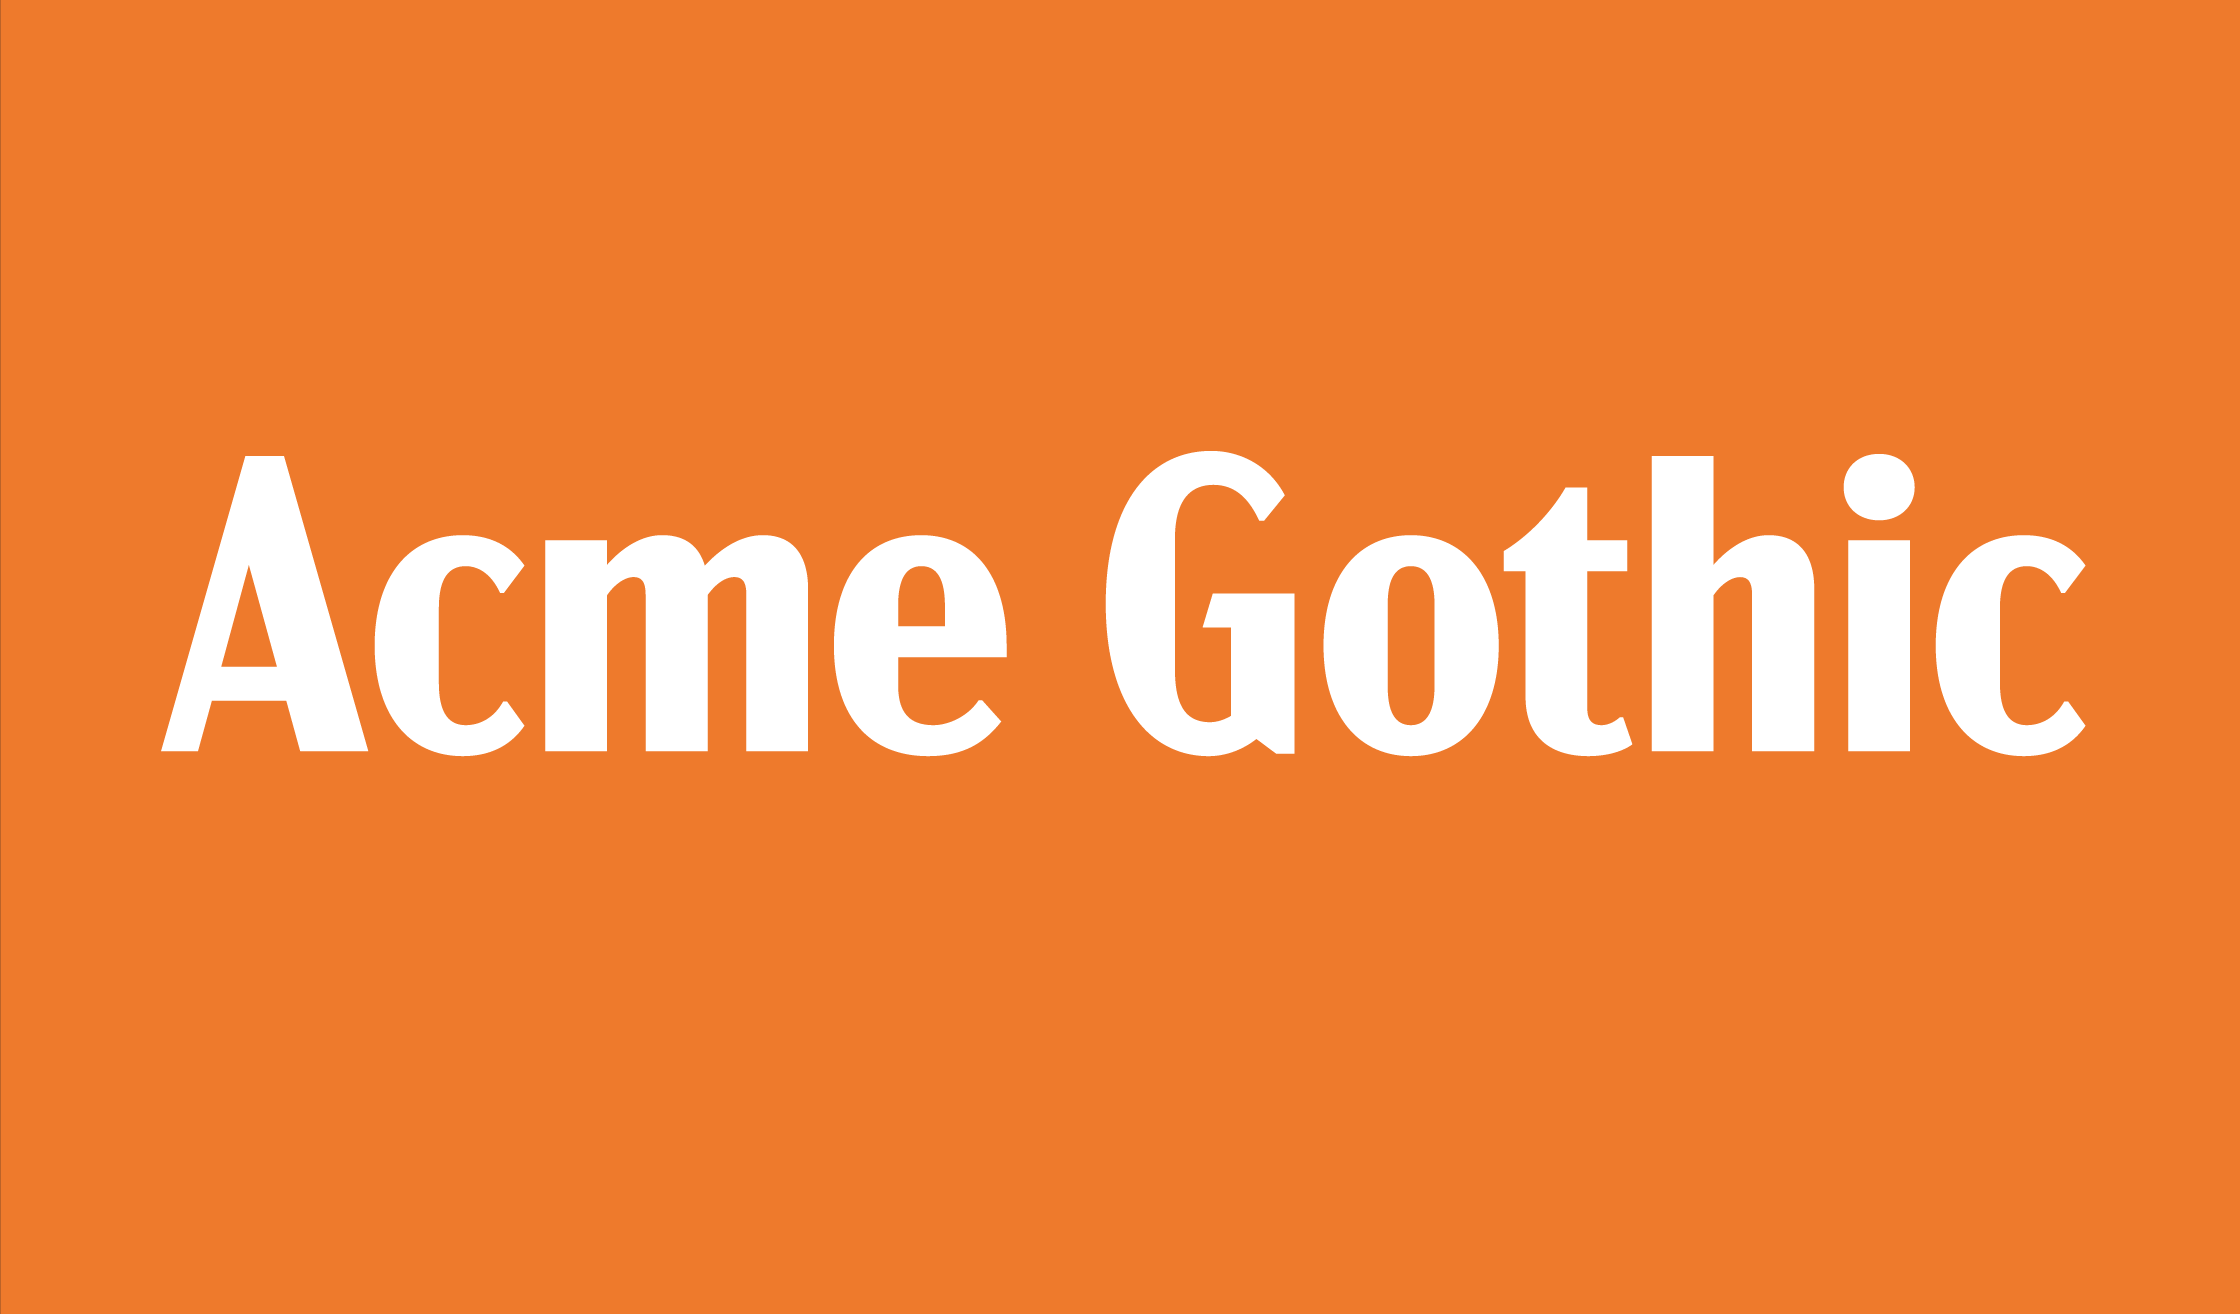 Acmegothic Banner Name 2240